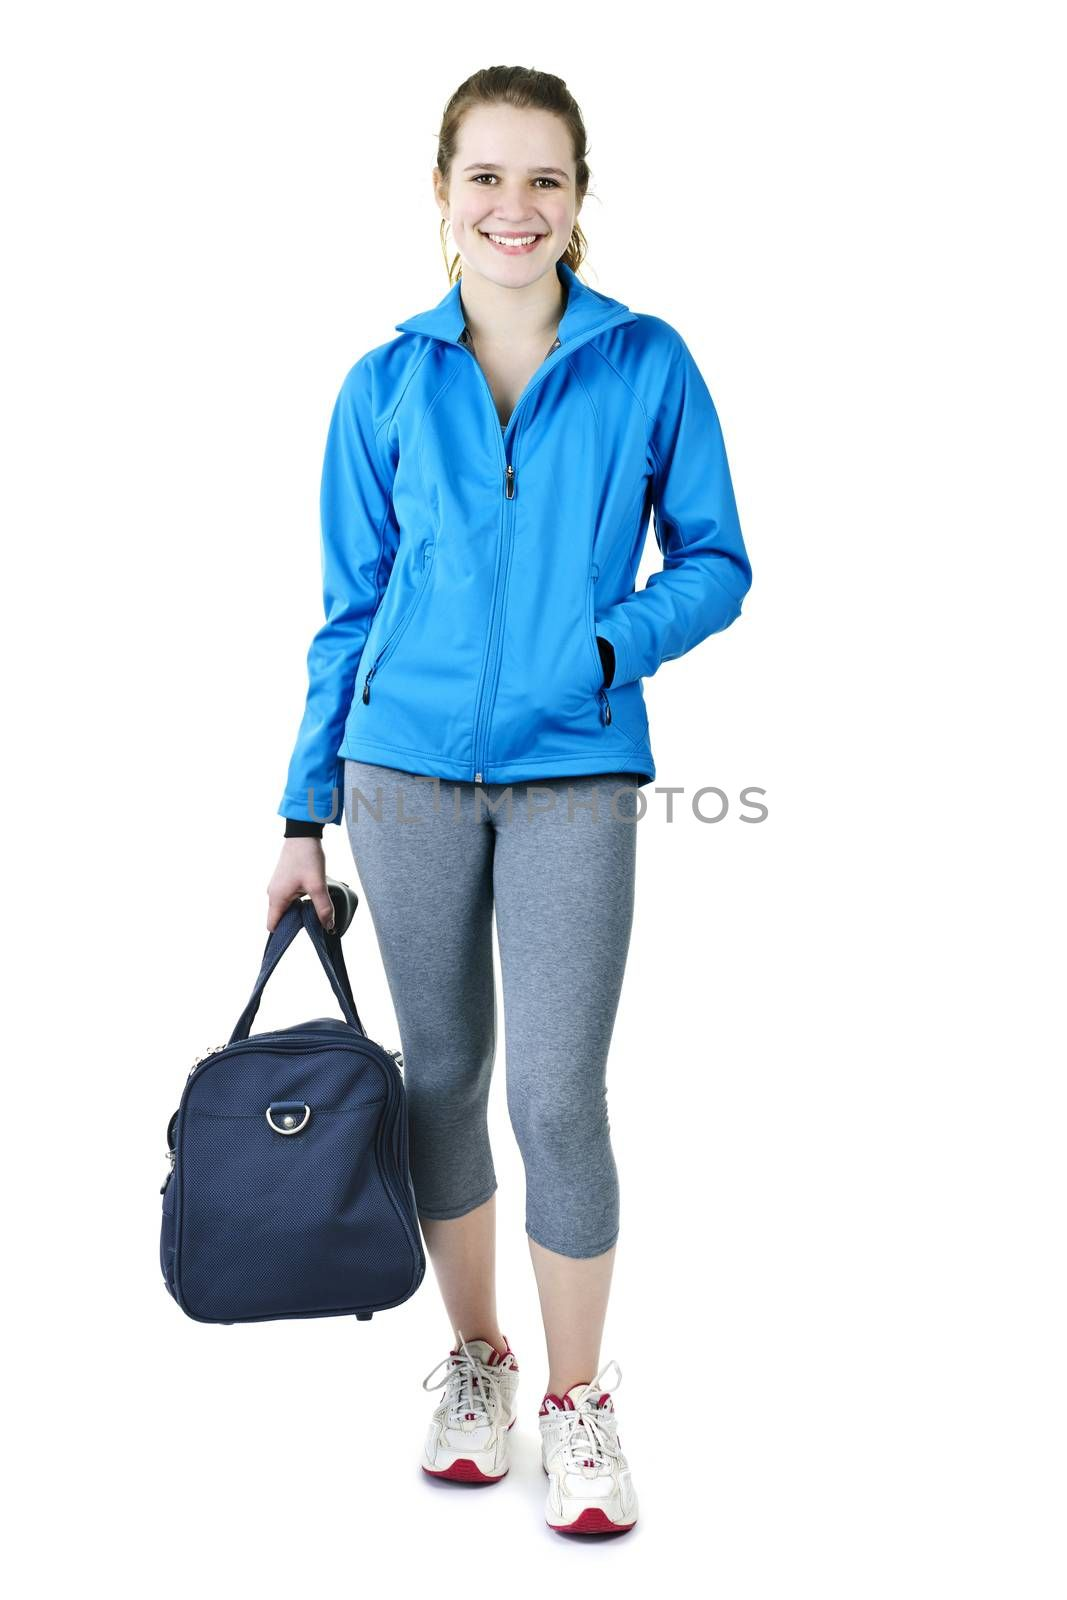 Smiling fit young woman with gym bag standing ready for fitness exercise